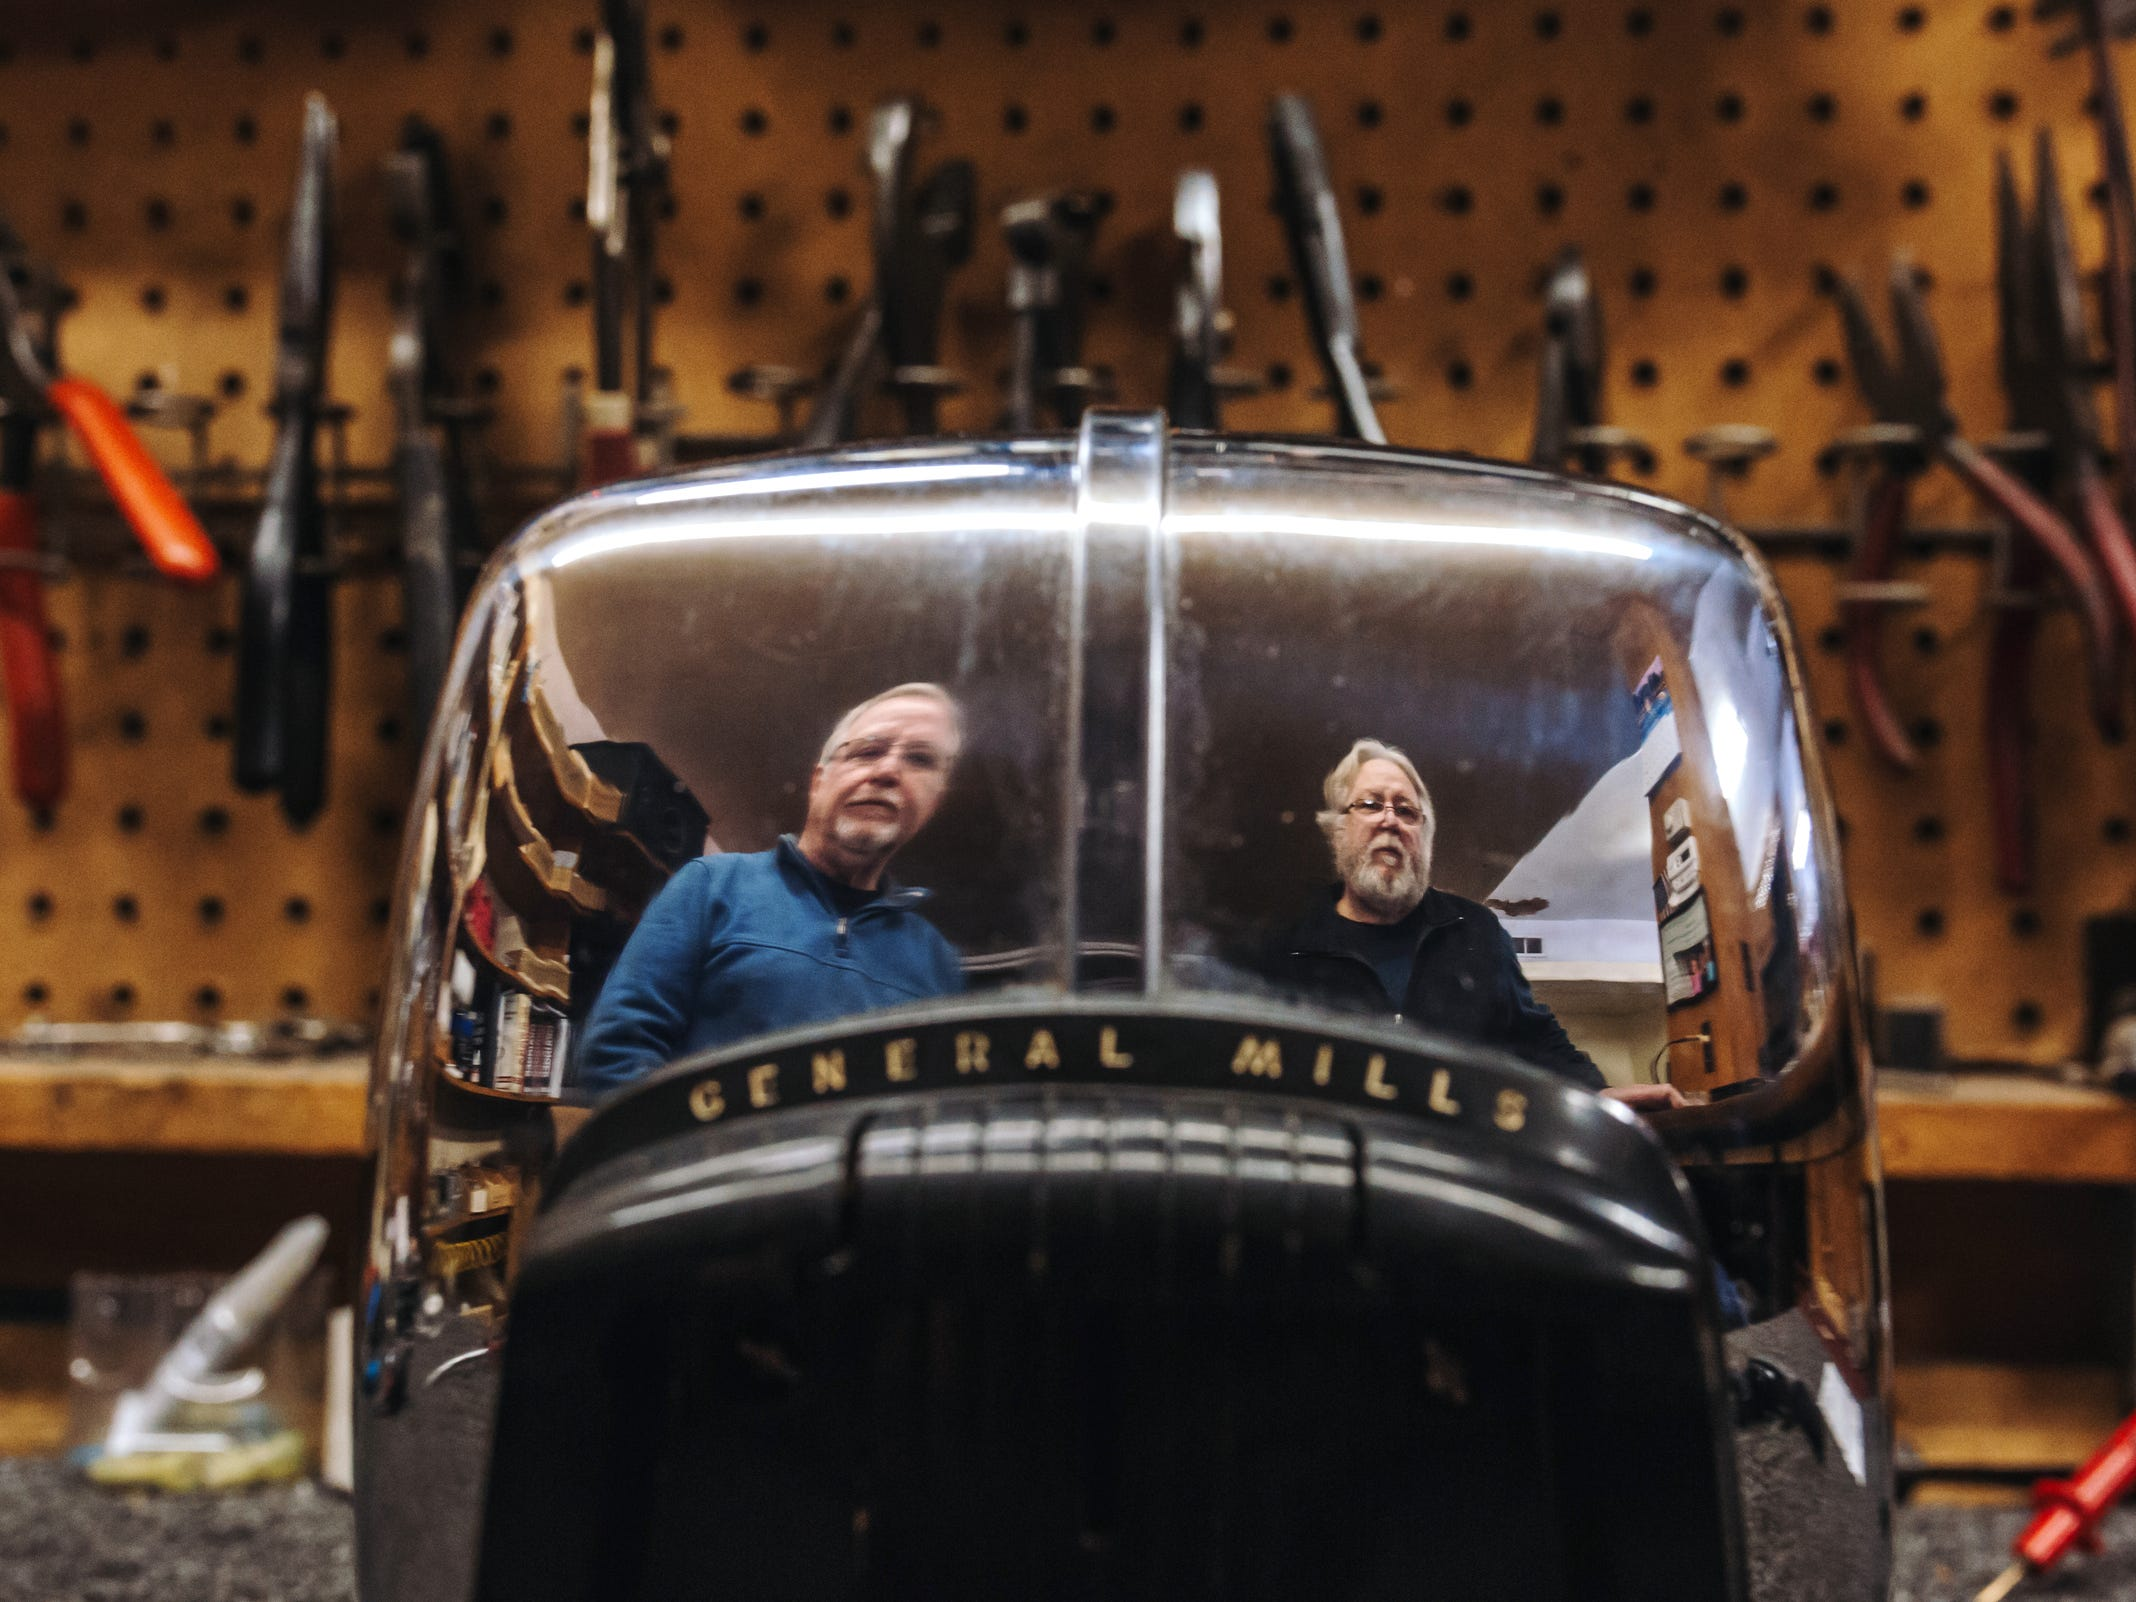 McNichols Electric co-owners Dave Kehoe (left) and his brother Pat Kehoe are seen reflected in an old General Mills toaster being repaired at their small appliance repair shop on Detroit's west side on Tuesday, March 20, 2018. The repair shop once had a dozen workers and four stores and is now down to the single location where the business was started by their father in 1953.